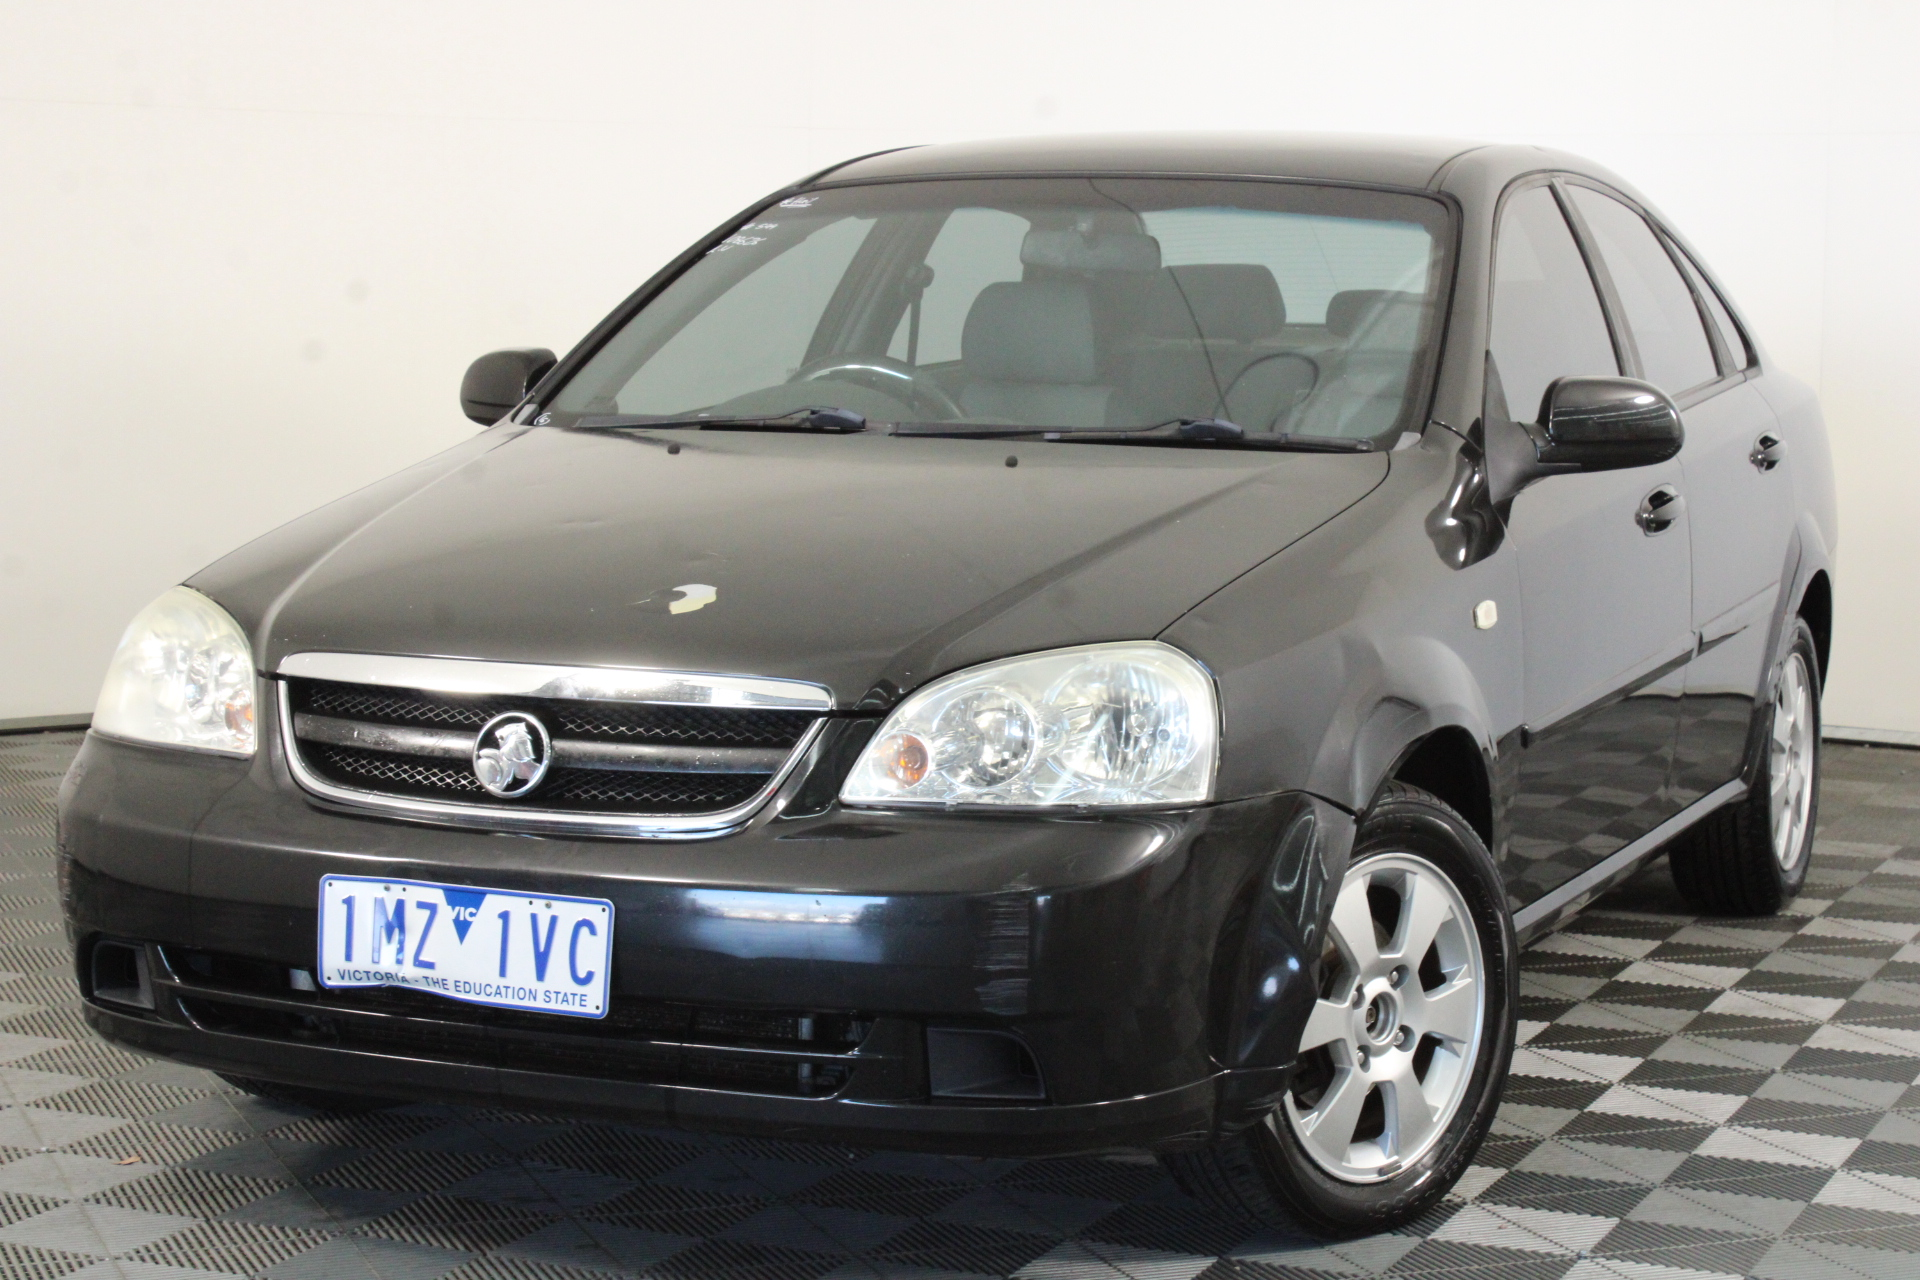 2008 Holden Viva JF Manual Sedan